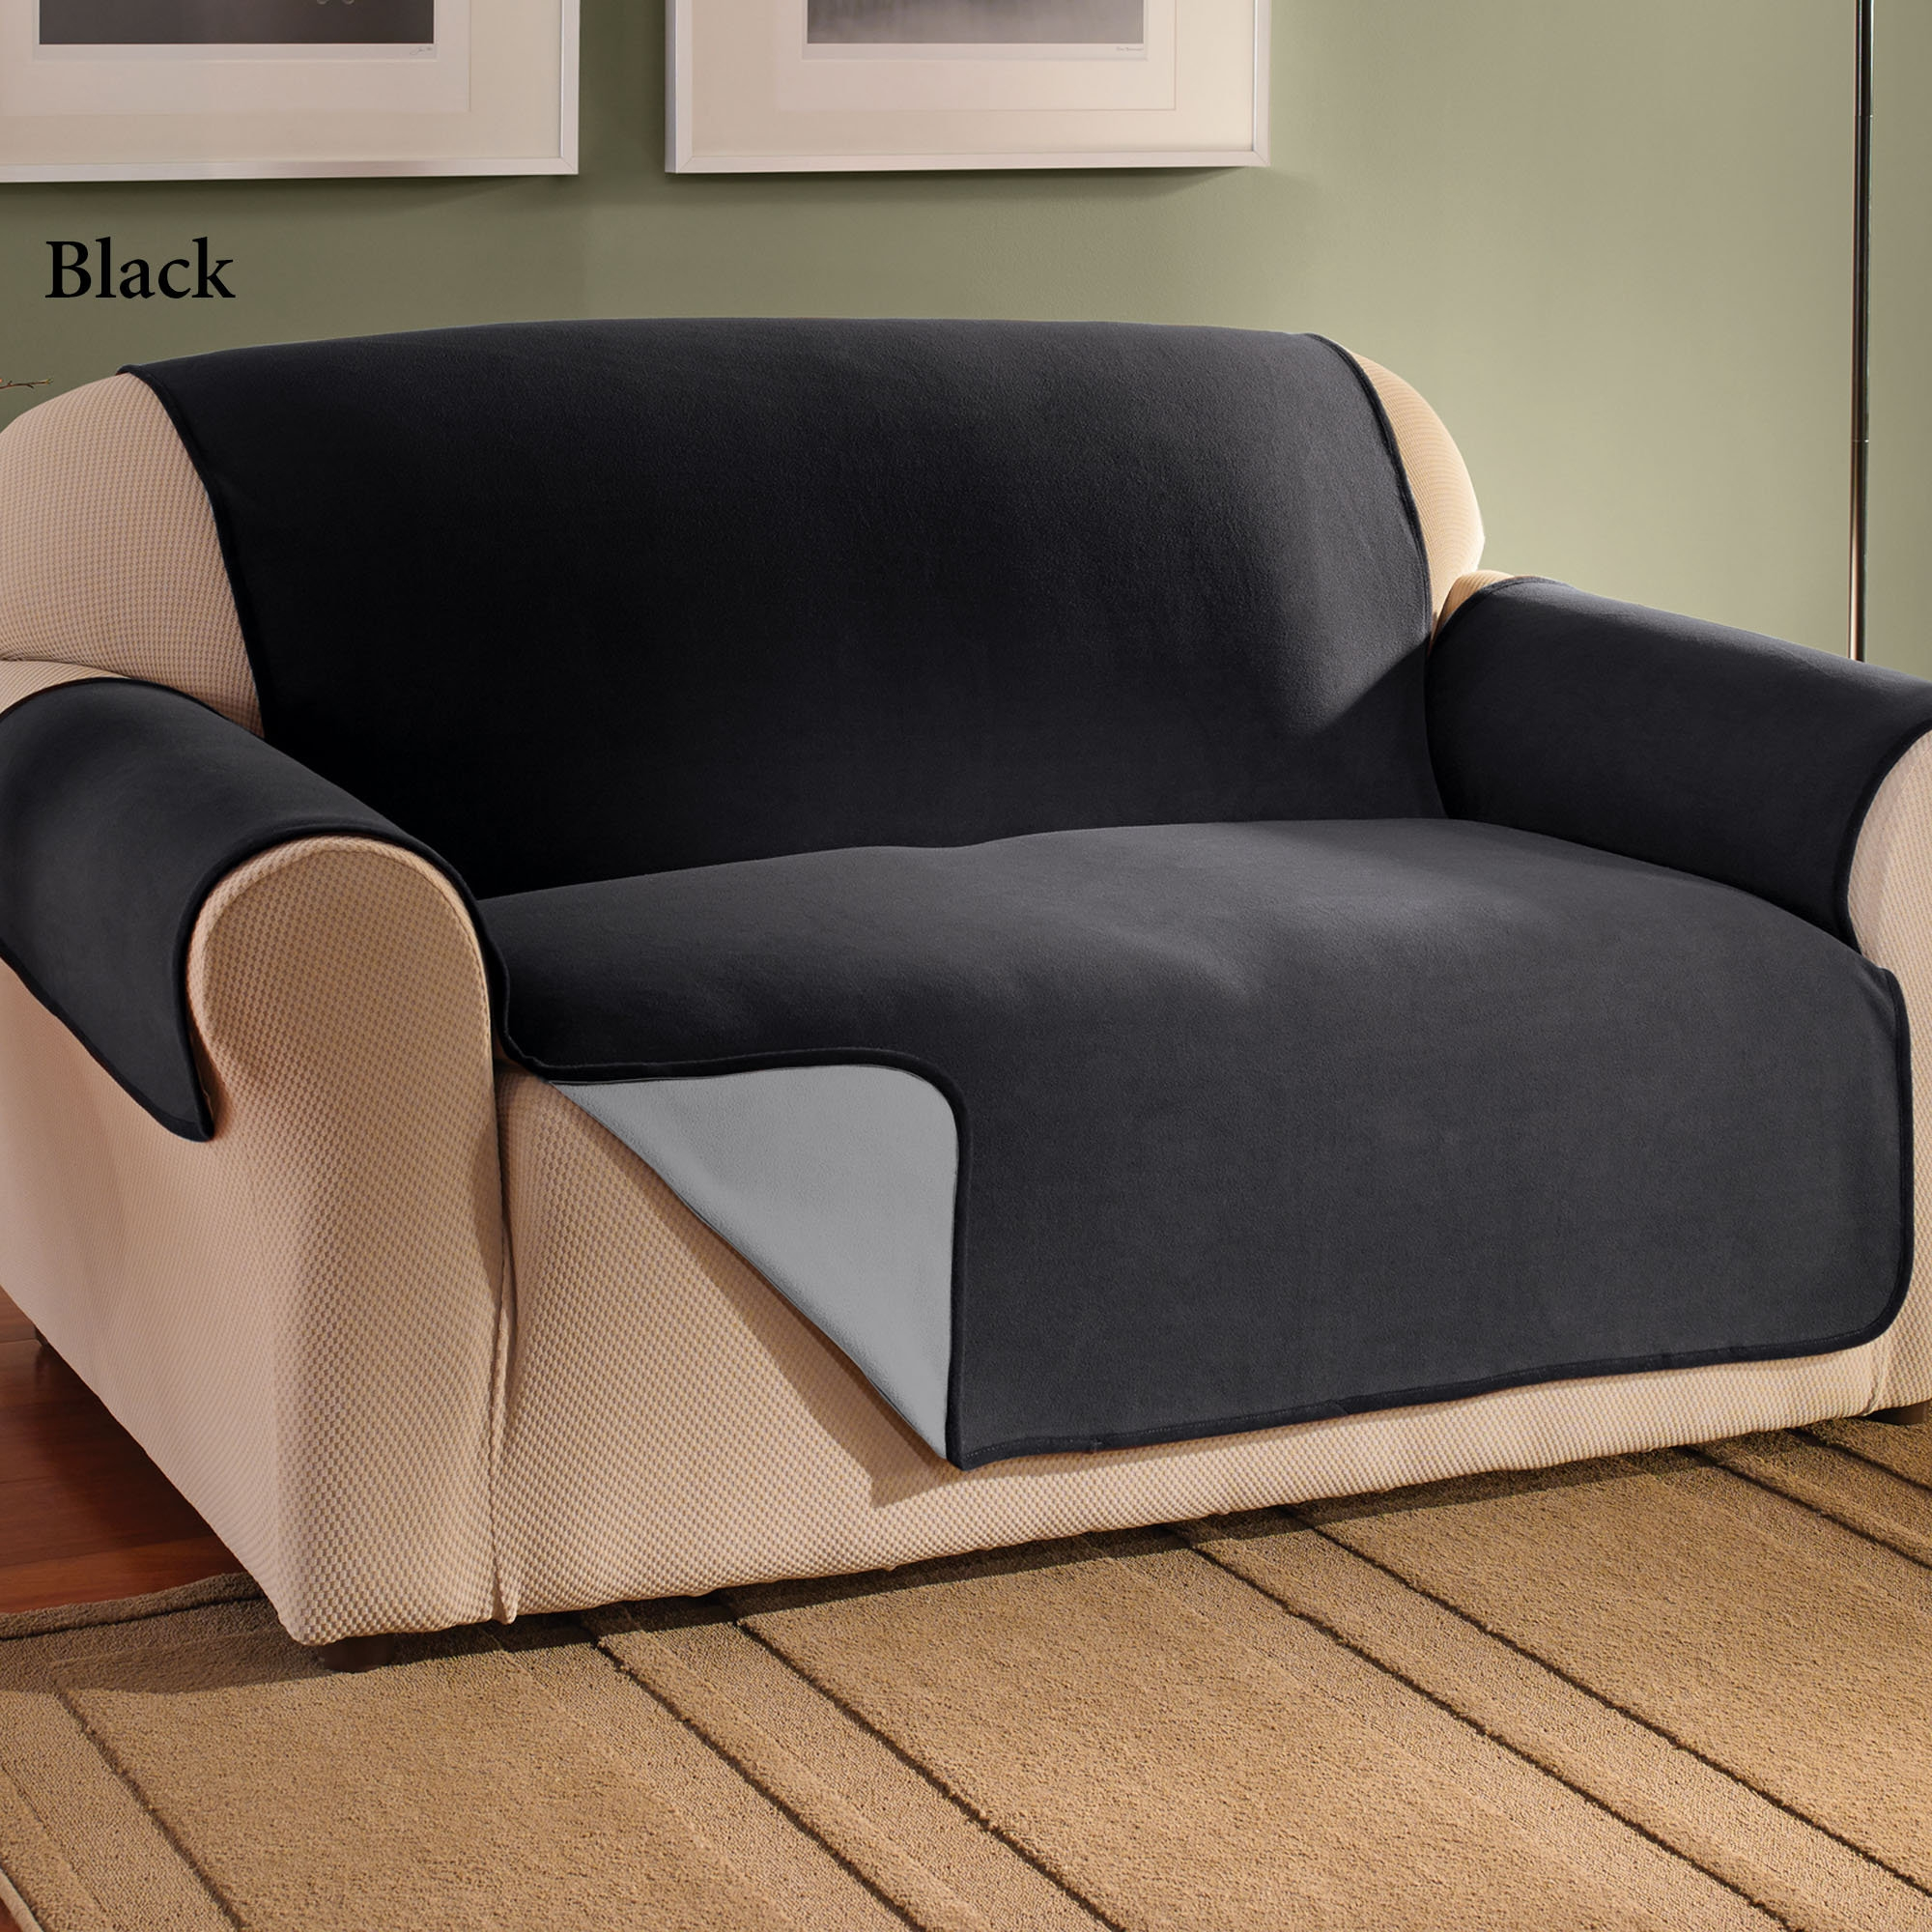 Sofas Center Covers For Sofas Head And Chairs Sectional Arm In Covers For Sofas (Image 12 of 15)